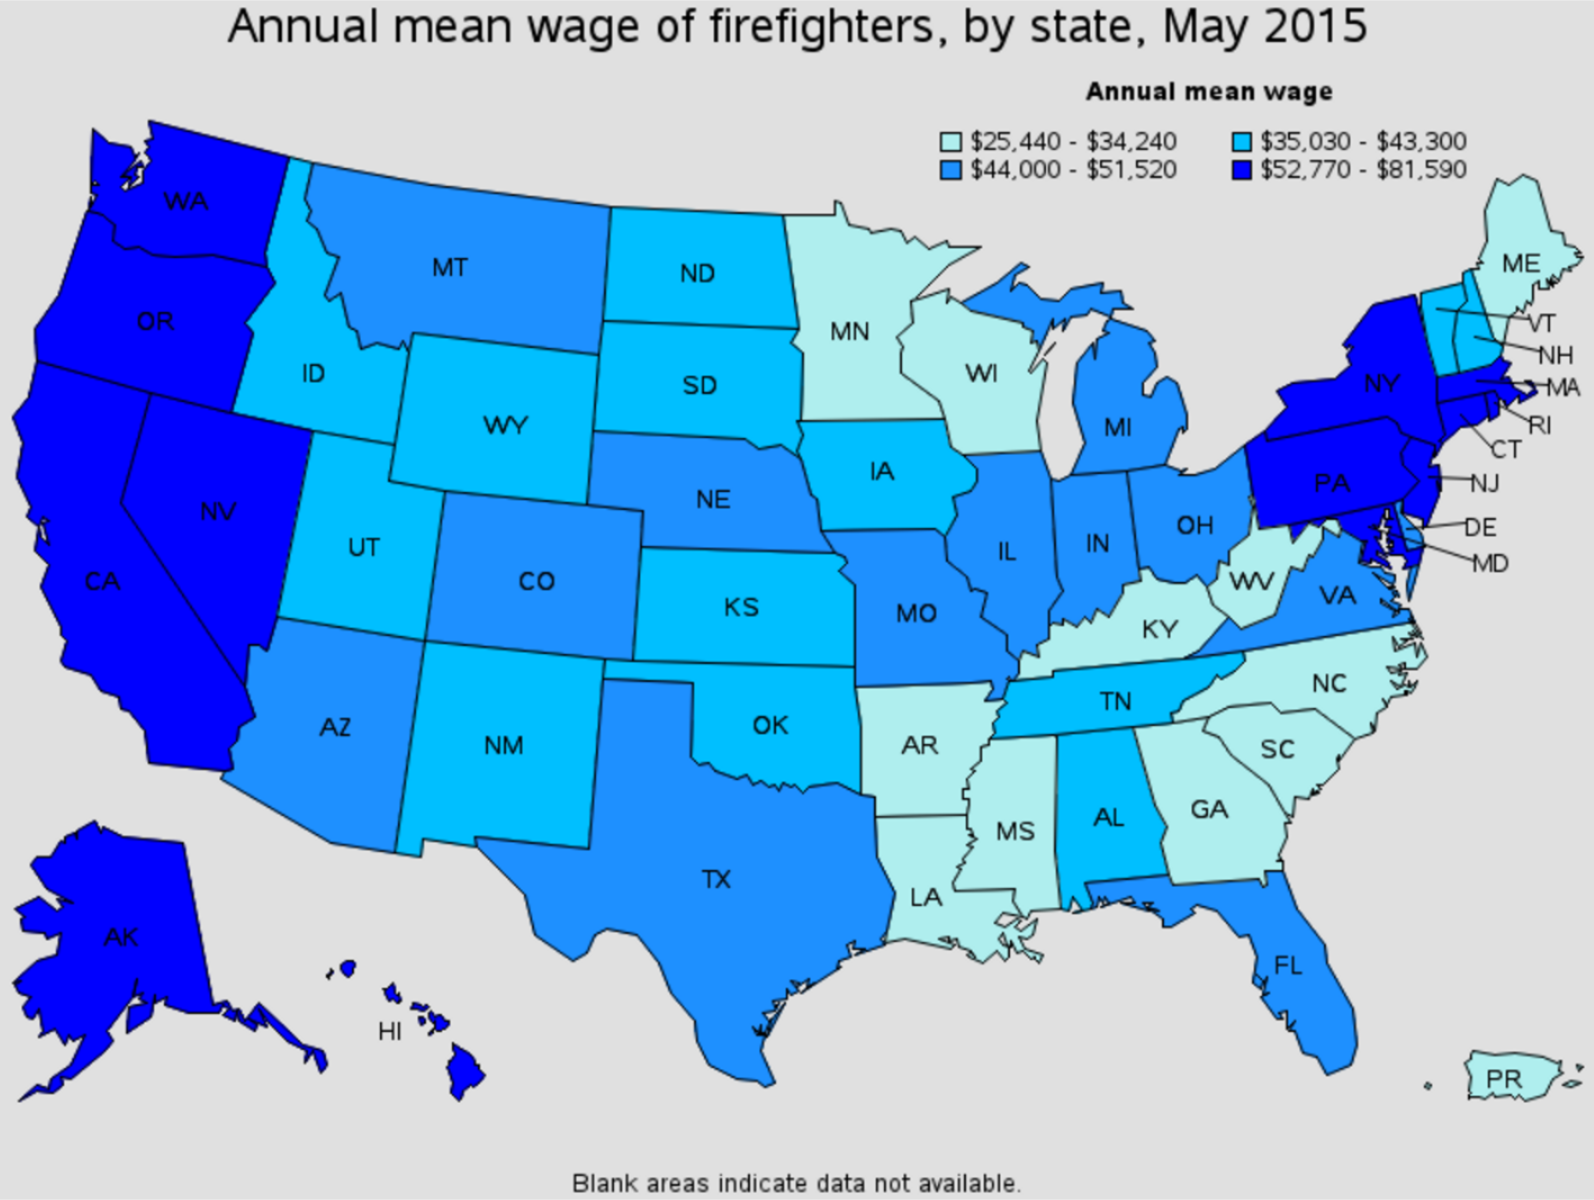 firefighter average salary by state Salt Lake City Utah